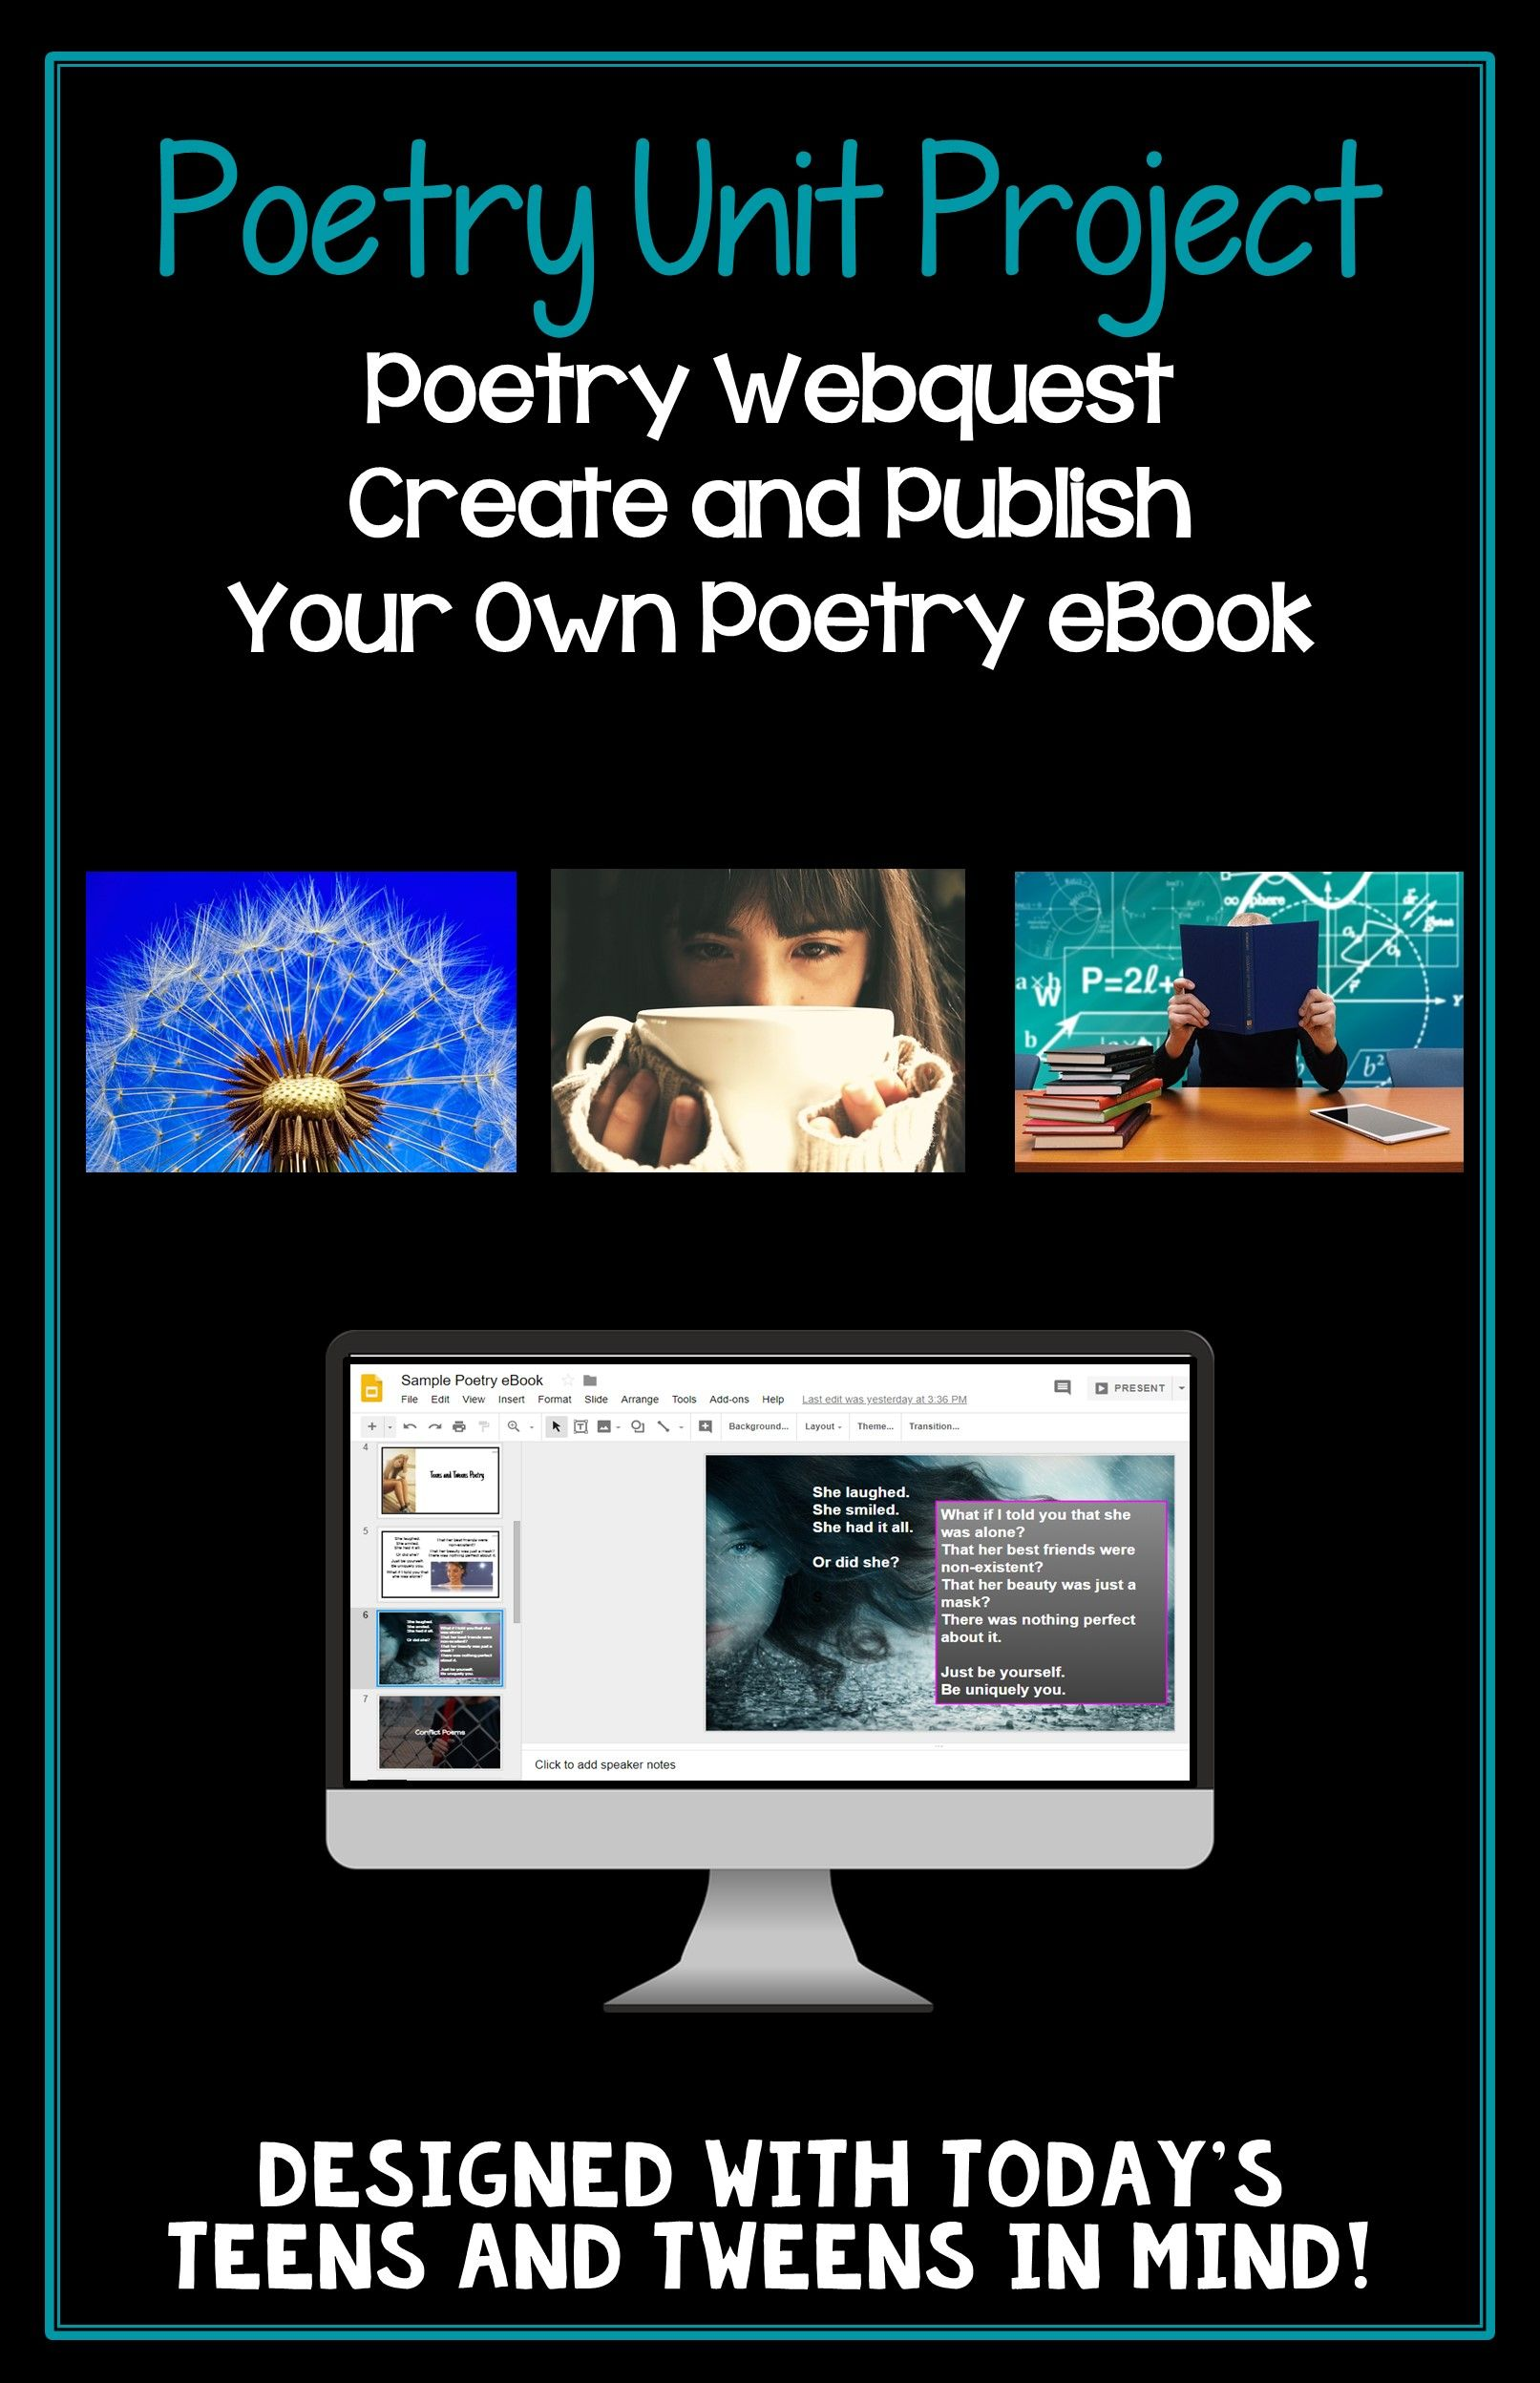 Poetry unit for teens